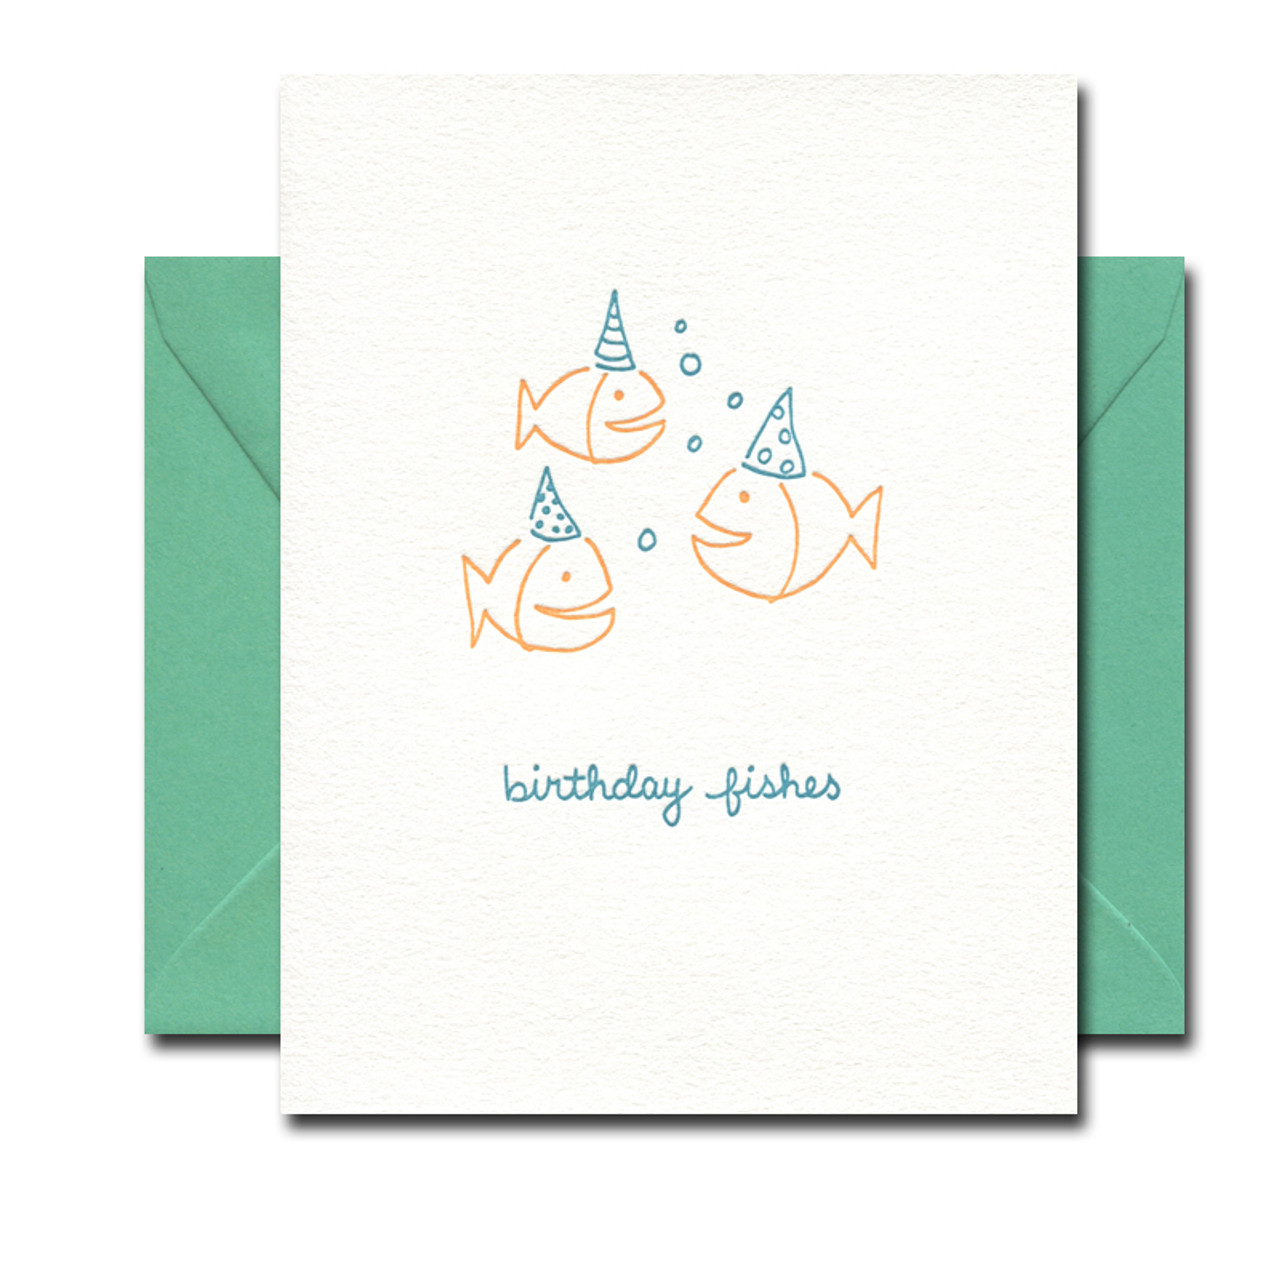 Birthday Fishes letterpress card from Albertine Press